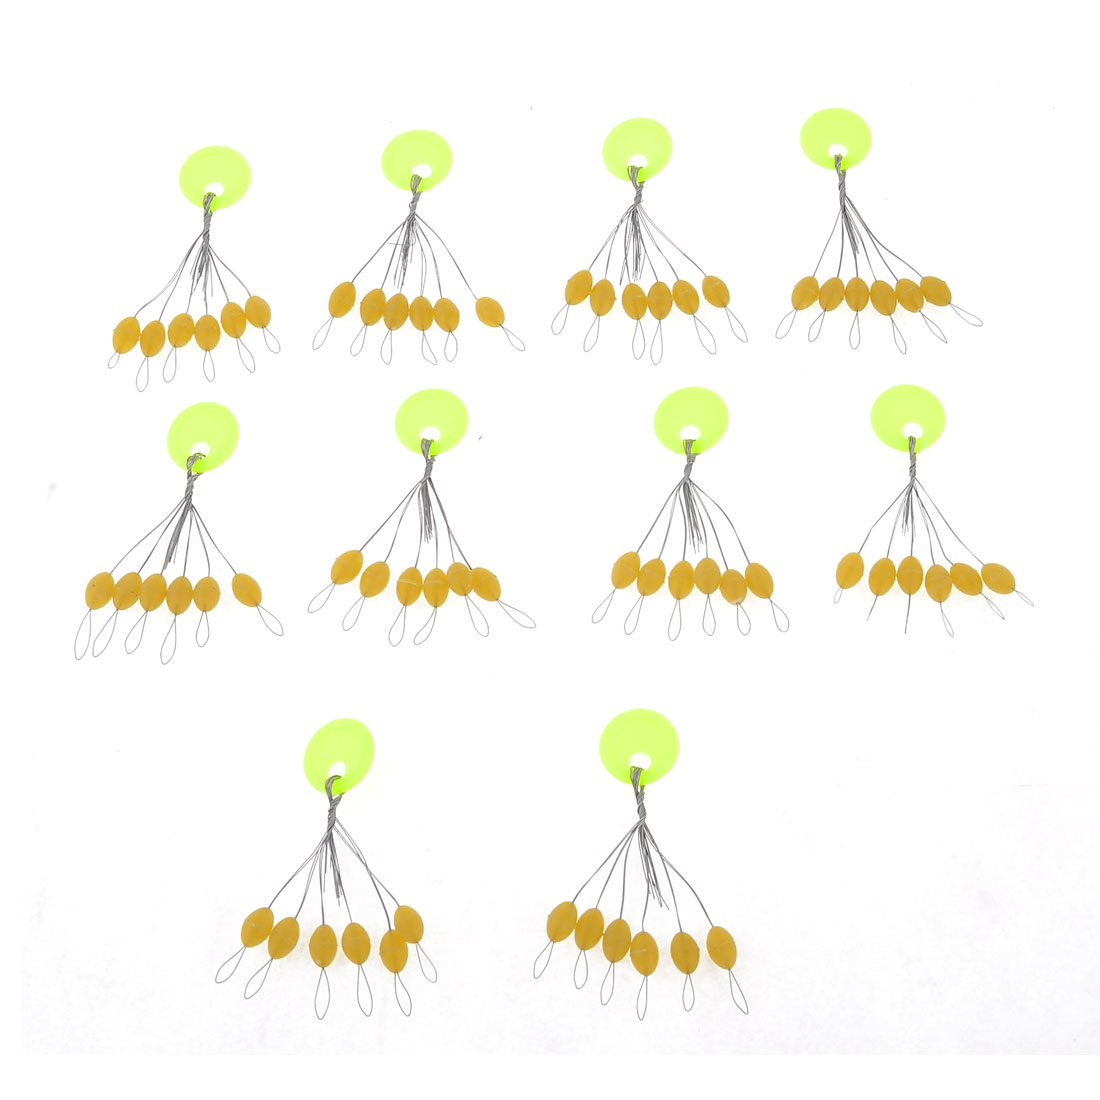 10 Pcs Fishing 6 in 1 Tan Color Plastic Oval Fish Bobber 10mm x 6mm